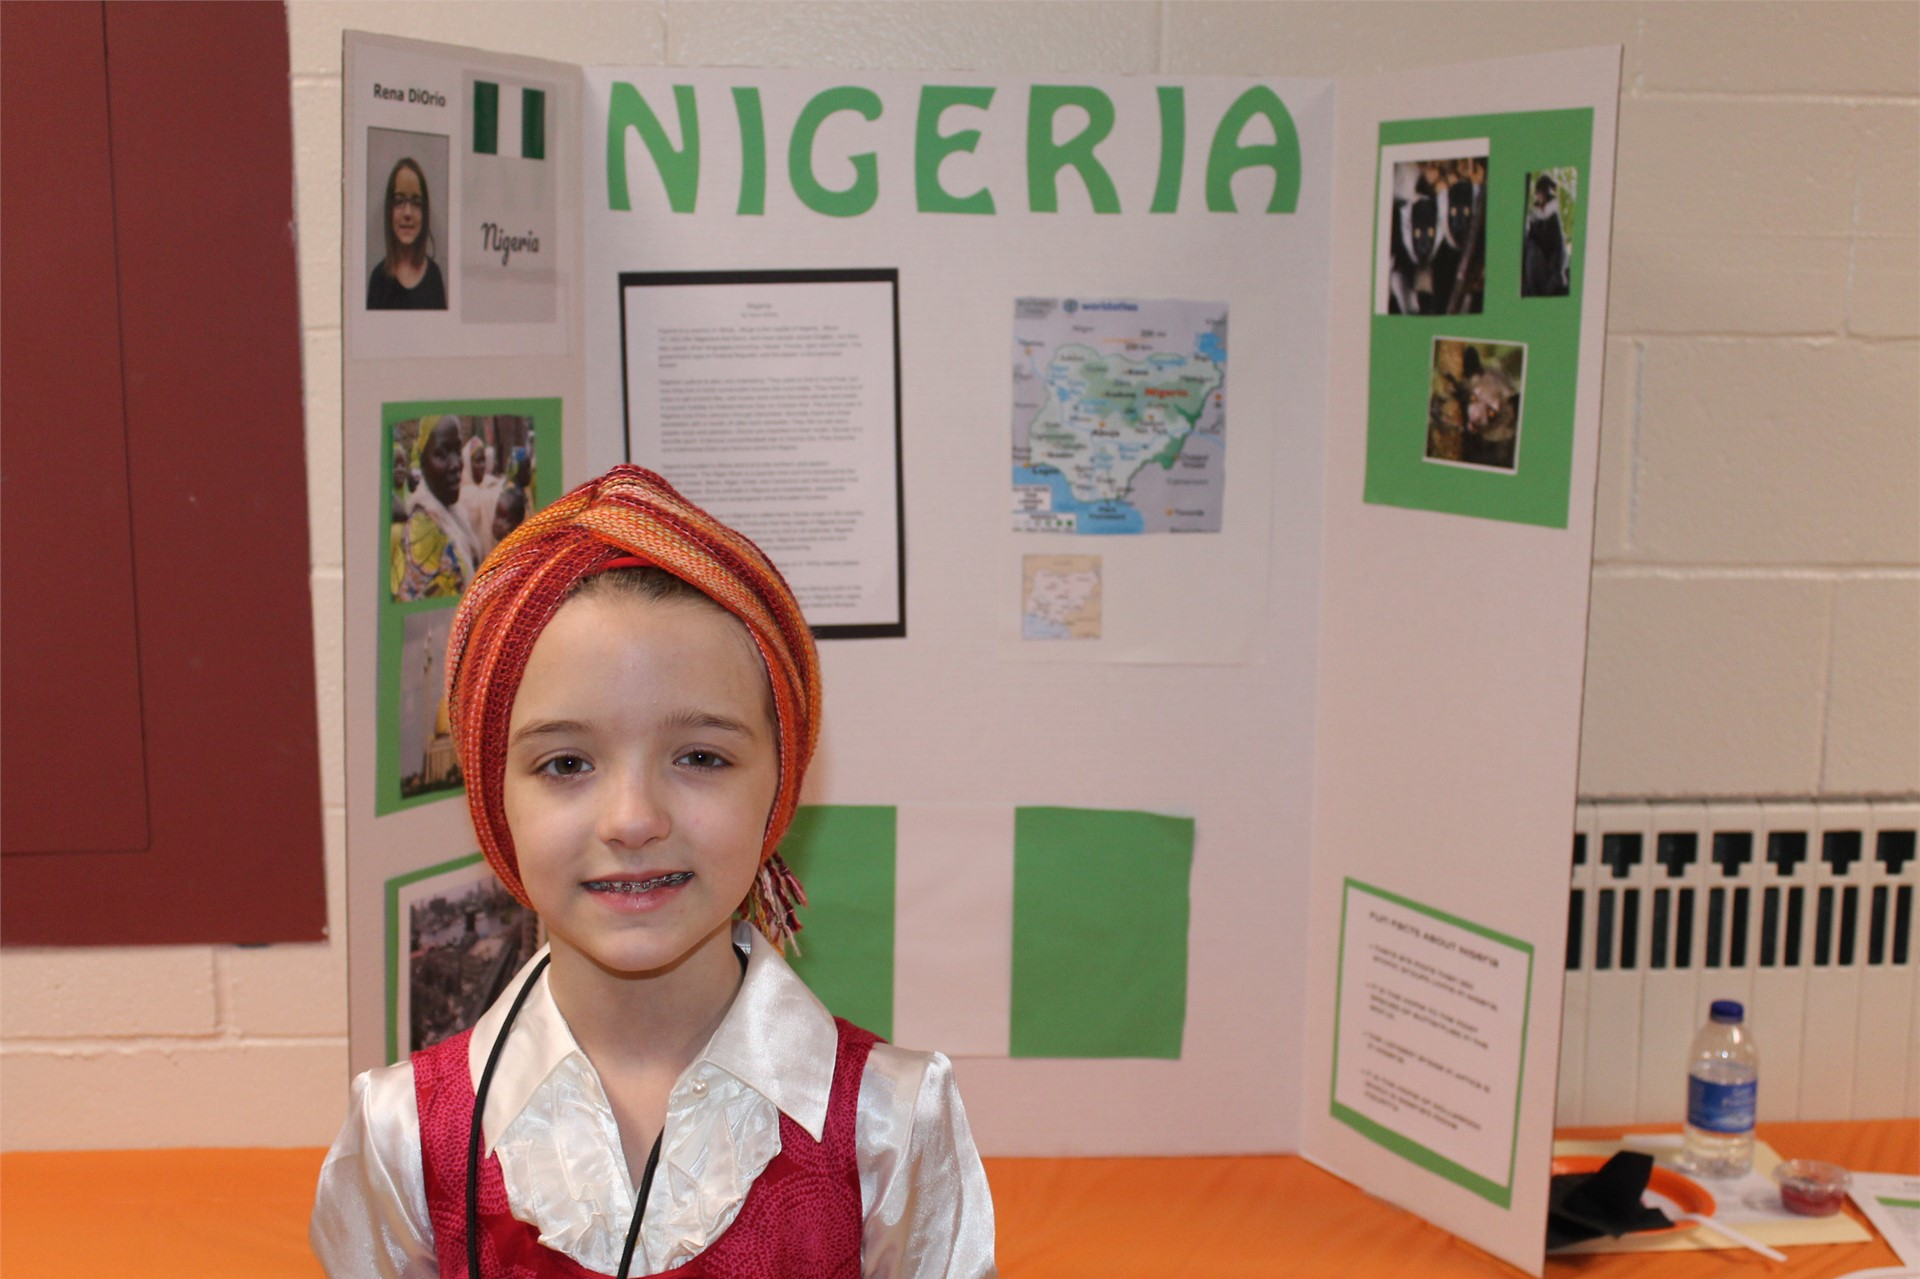 Students presented different countries at the Elementary Gifted Expo